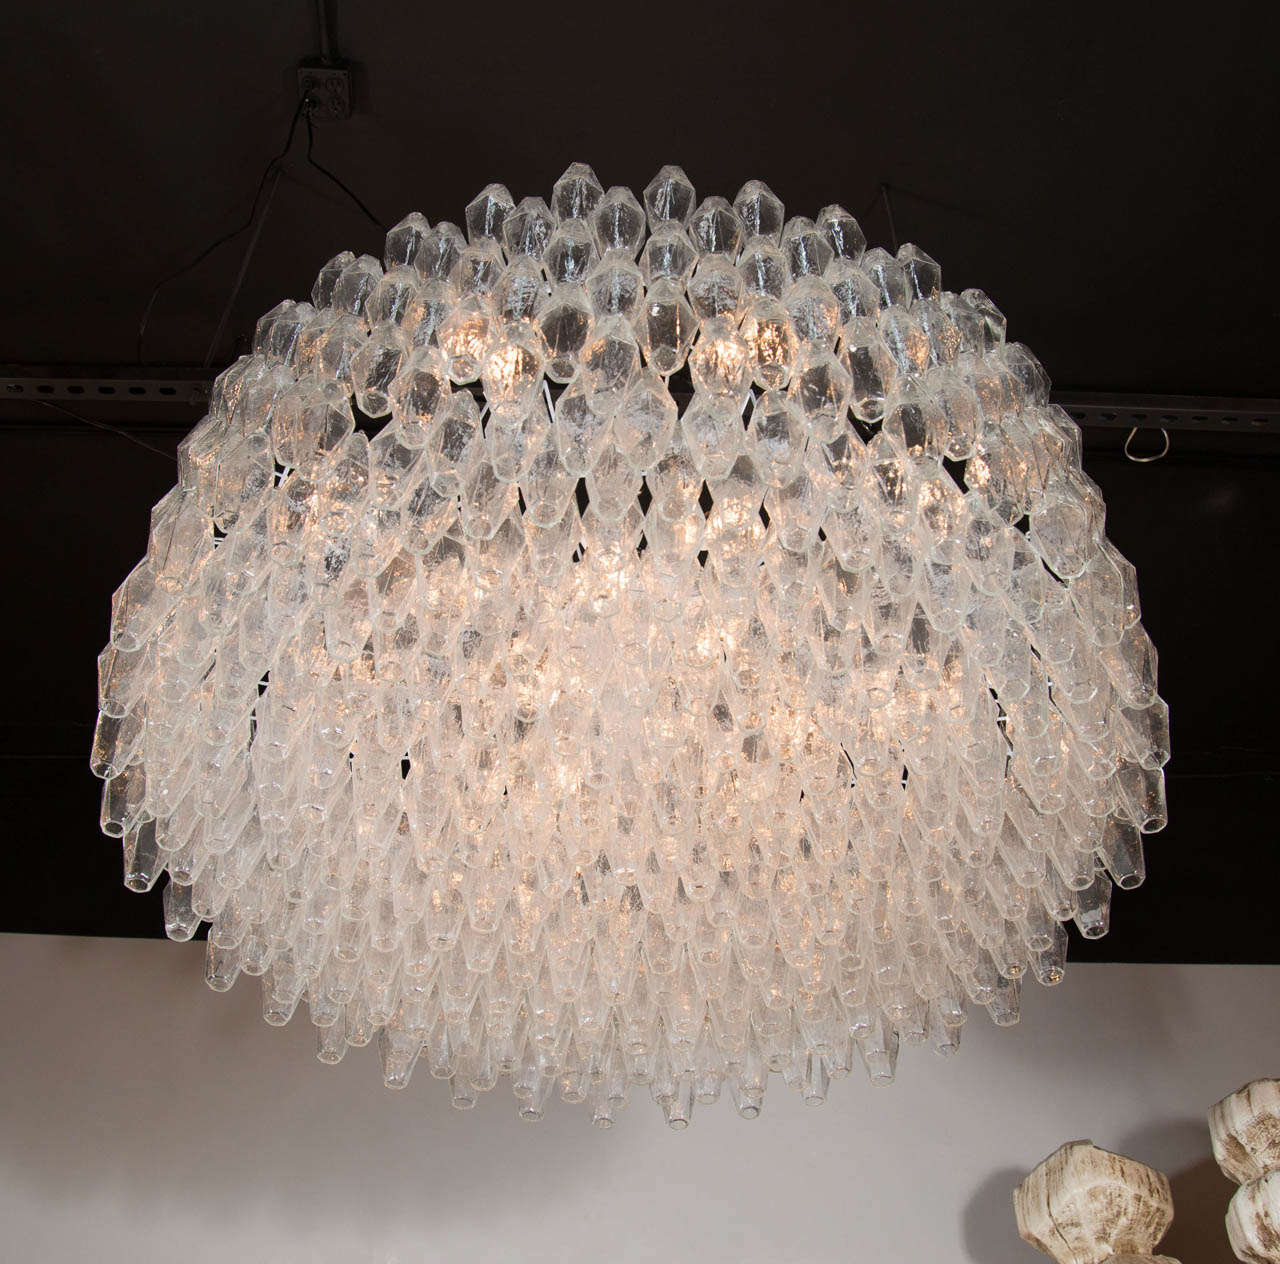 Monumental Handblown Smoked Murano Glass Polyhedral Chandelier by Venini In Excellent Condition For Sale In New York, NY